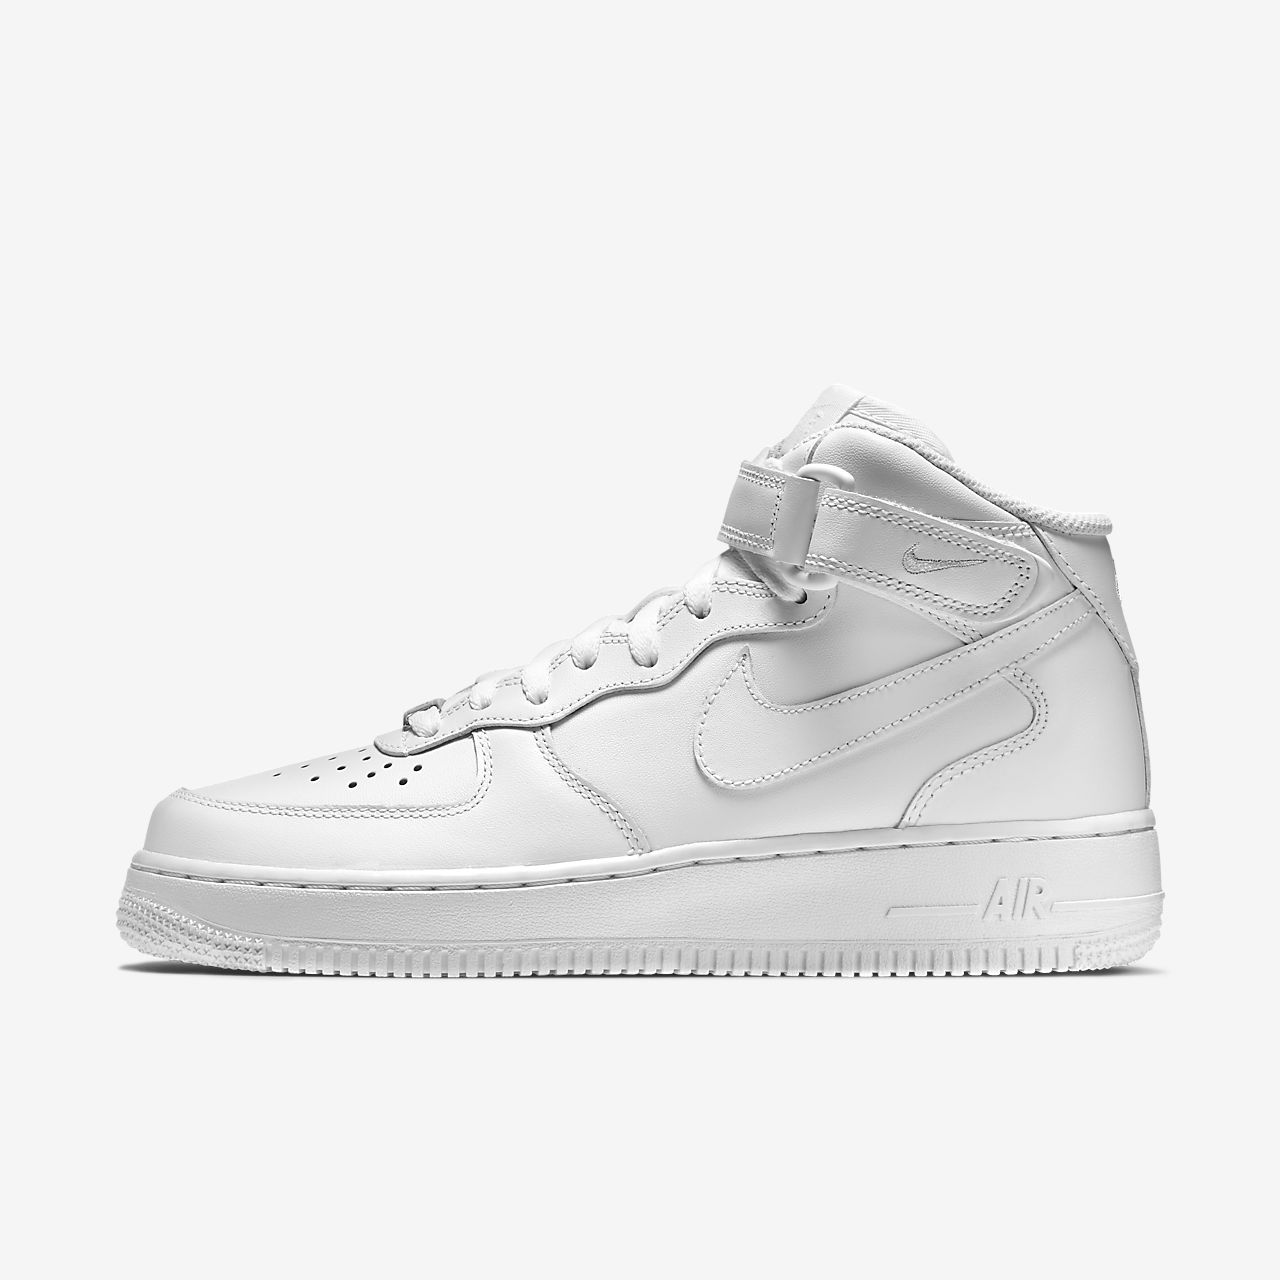 ... Chaussure Nike Air Force 1 Mid '07 pour Femme